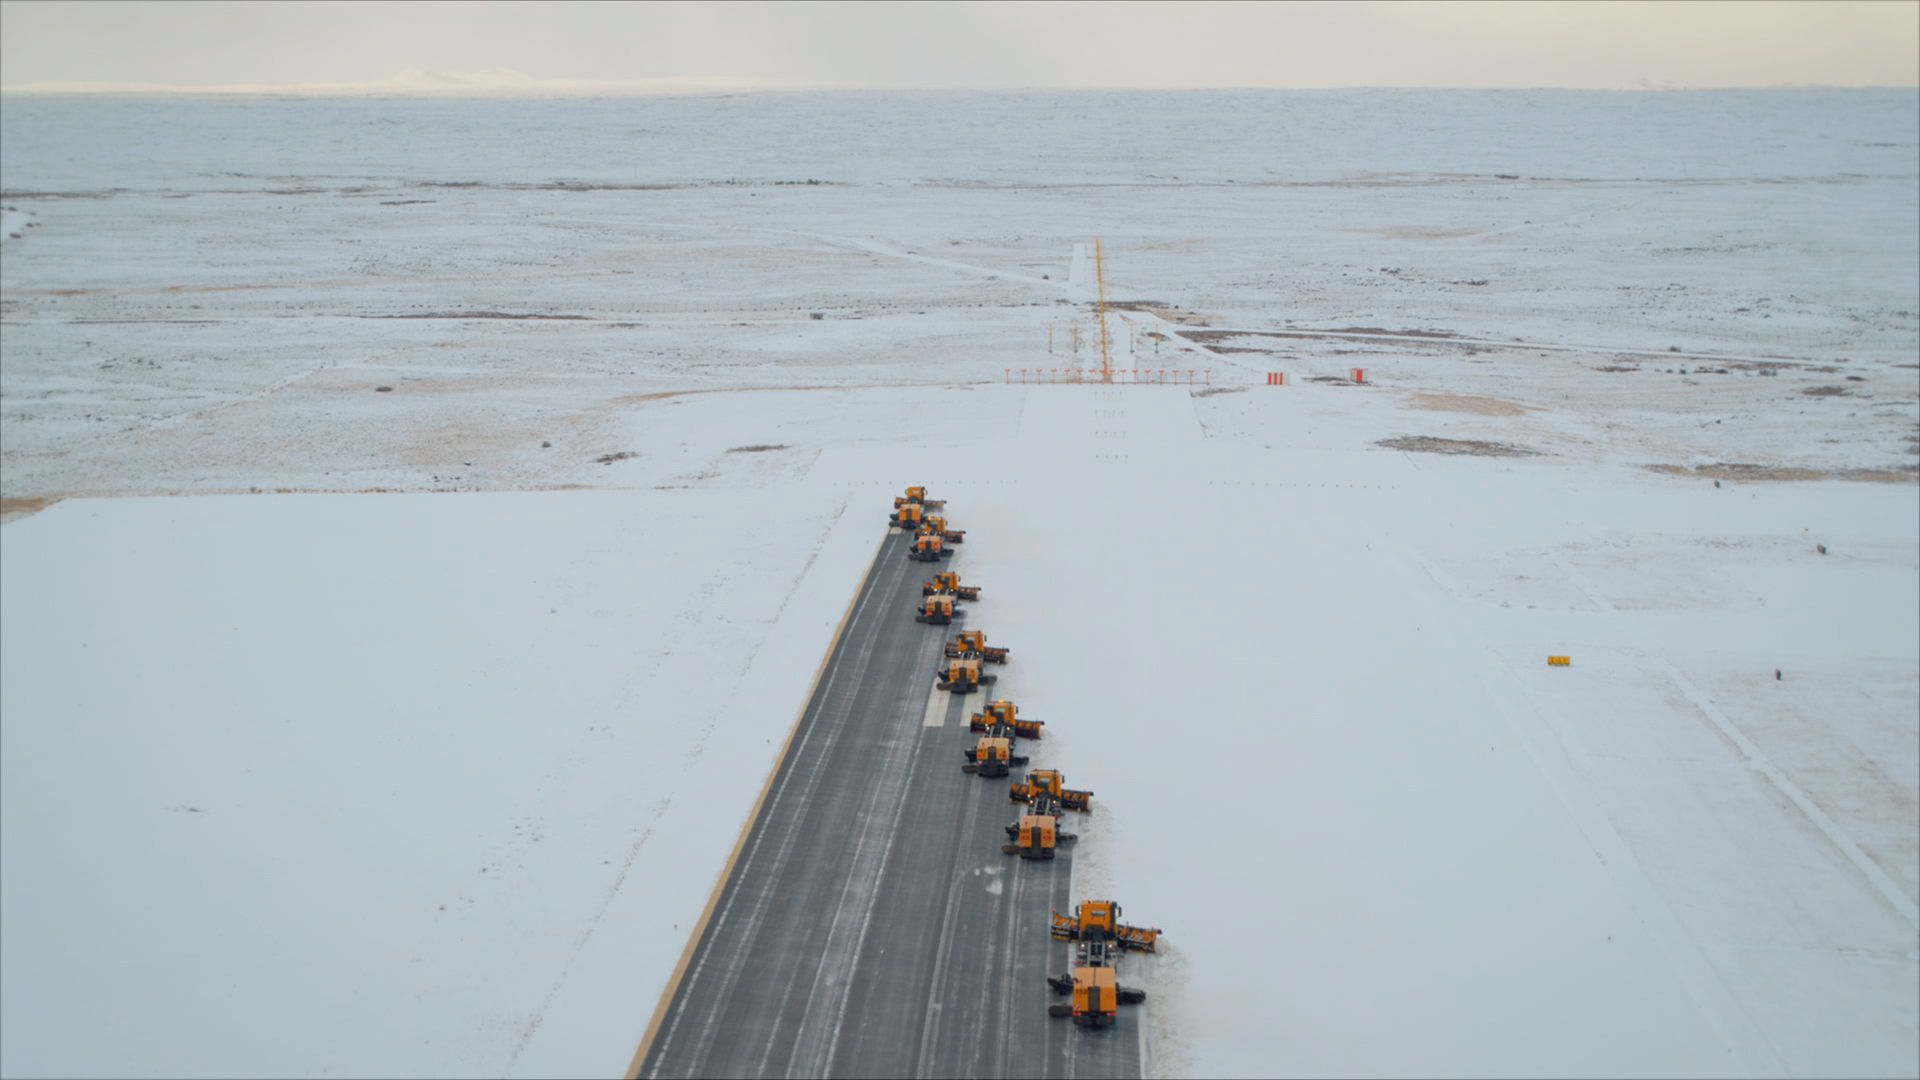 Snow plow machines clearing the runway at Keflavik airport. This is from Europe from above,... [Photo of the day - September 2021]